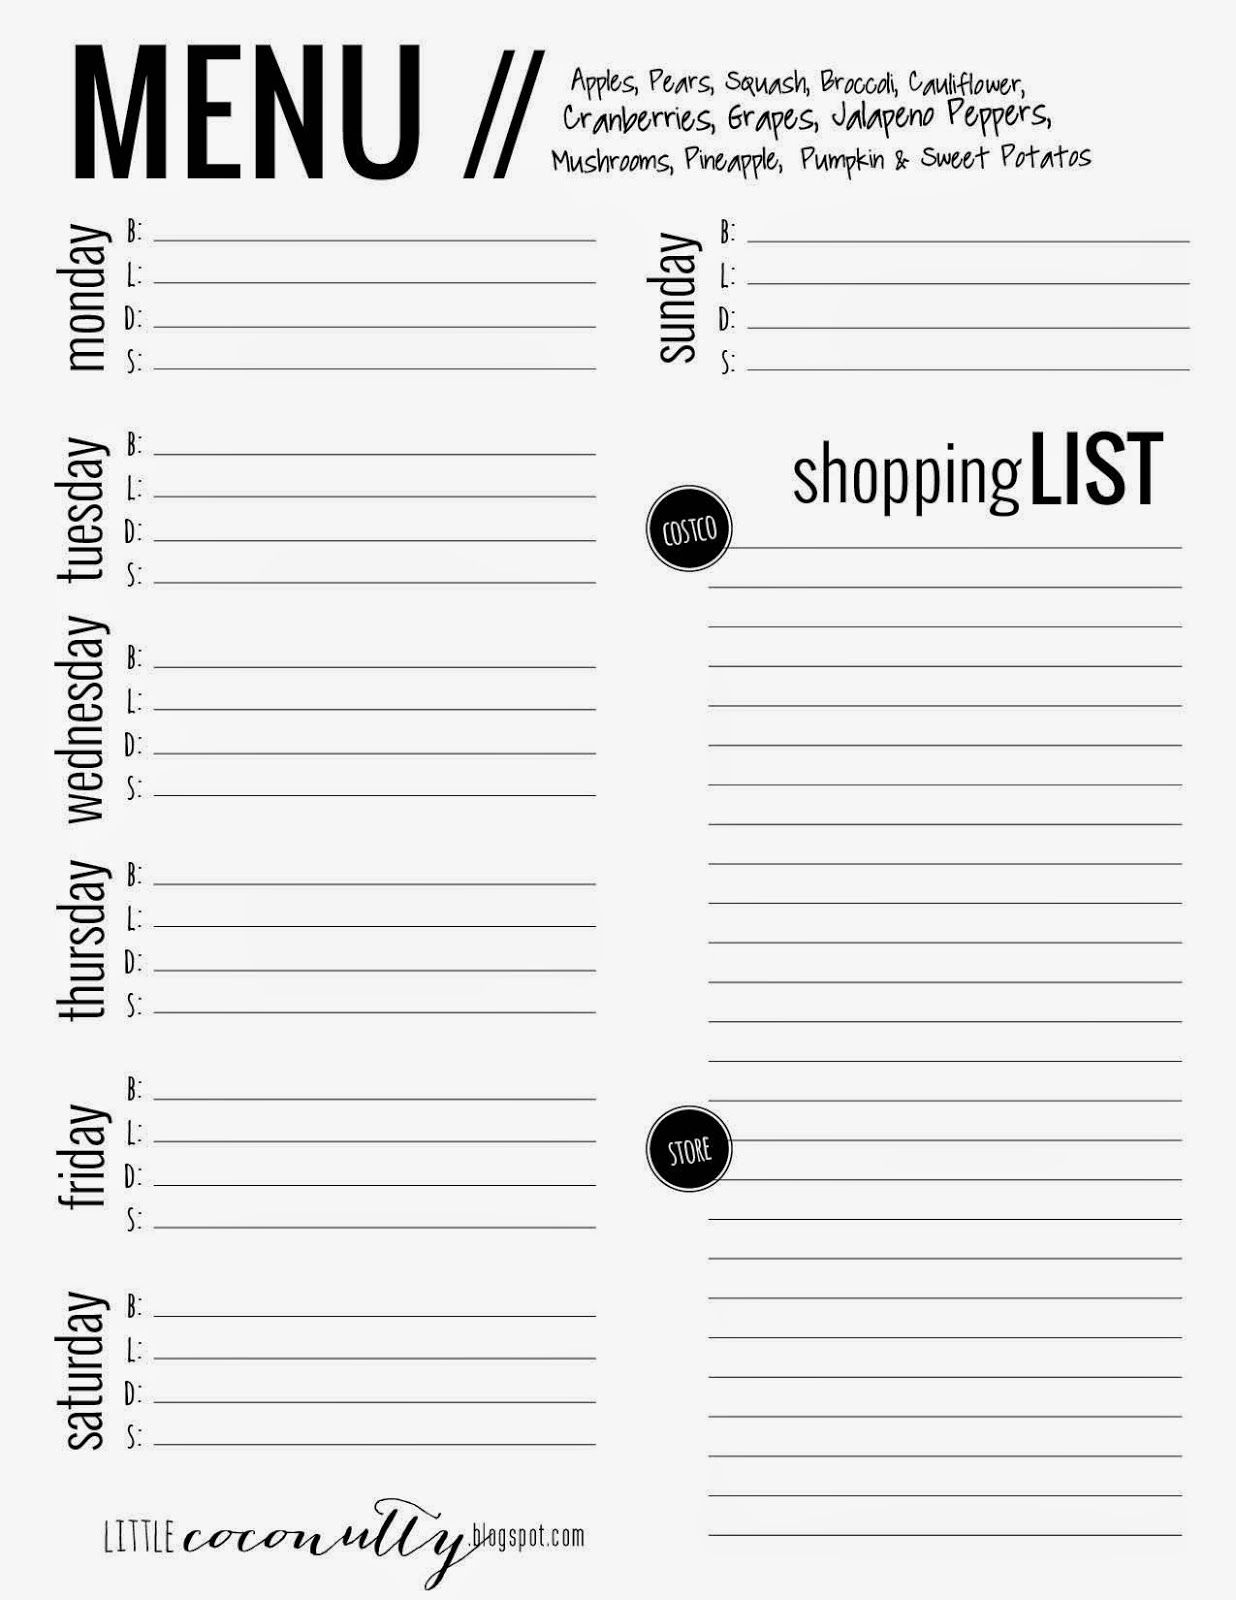 little coconutty Free Menu Planner Printable grocery